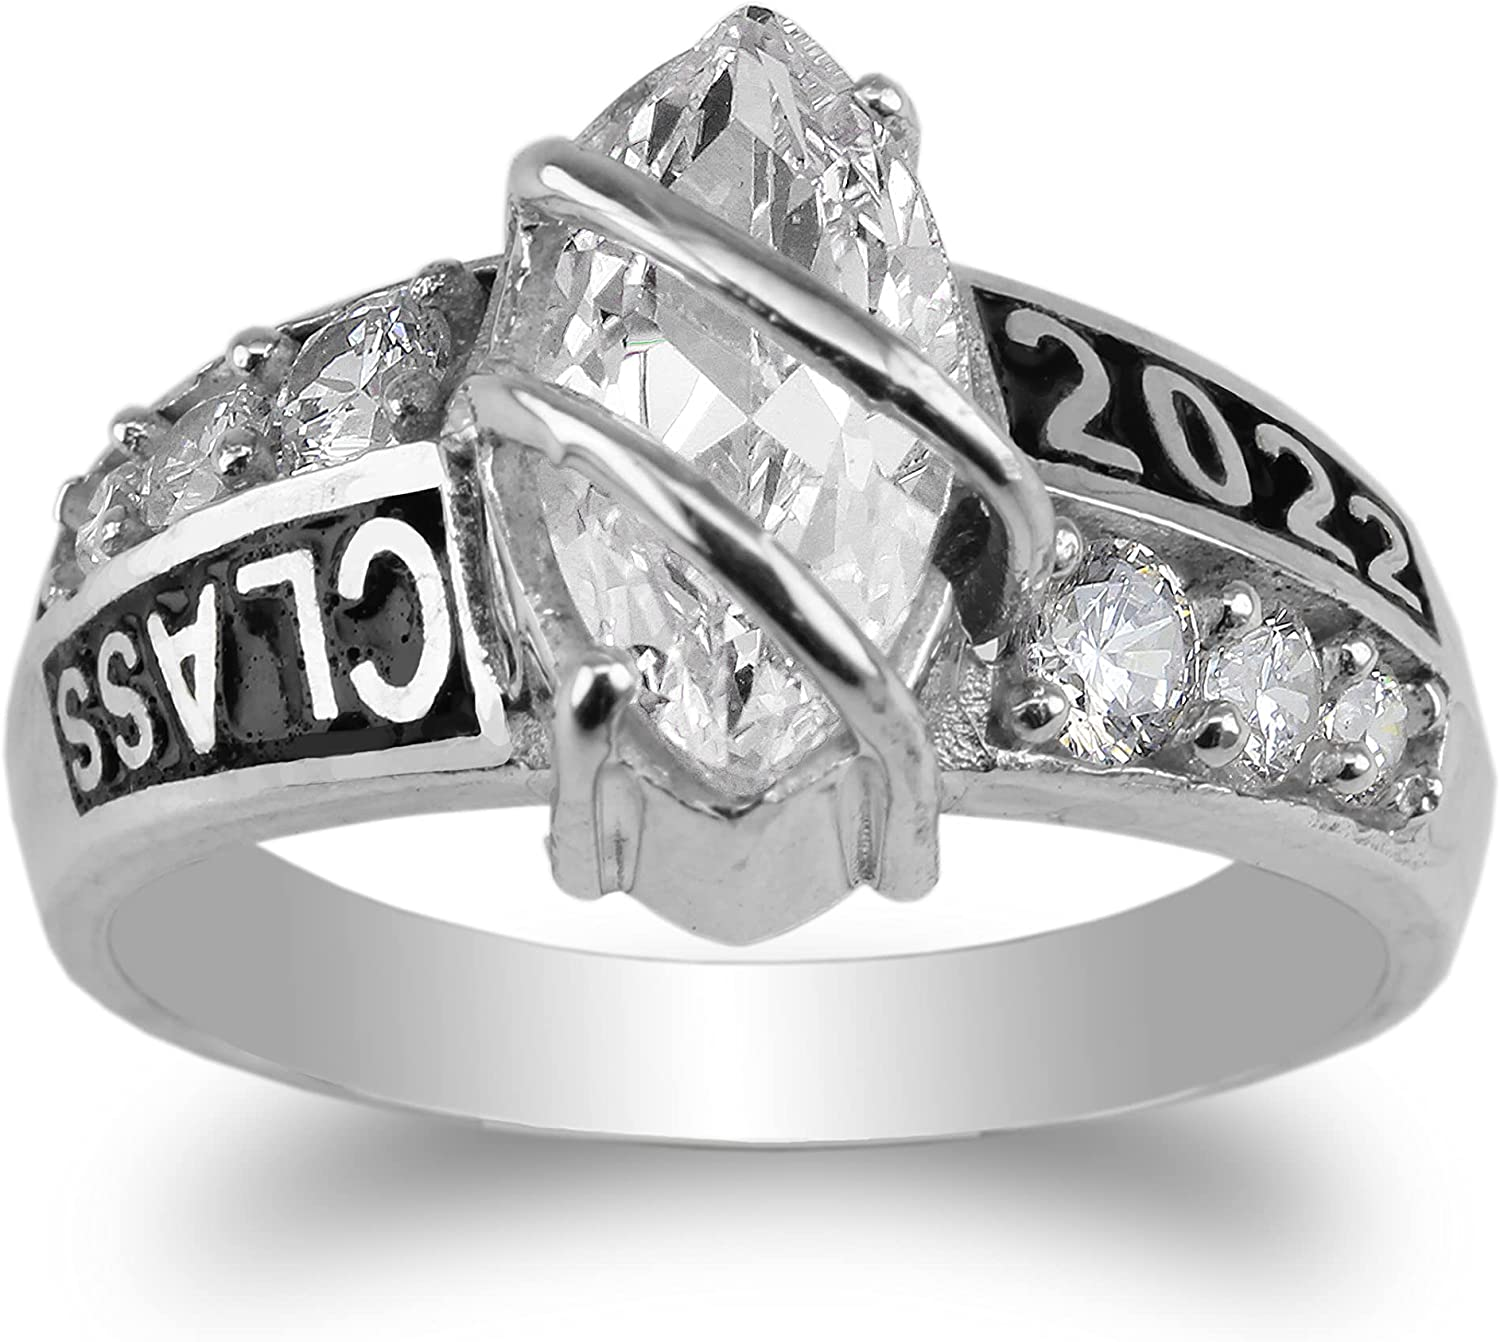 JamesJenny 925 Sterling All items in the store Detroit Mall Silver Class Graduation wit of 2022 Ring